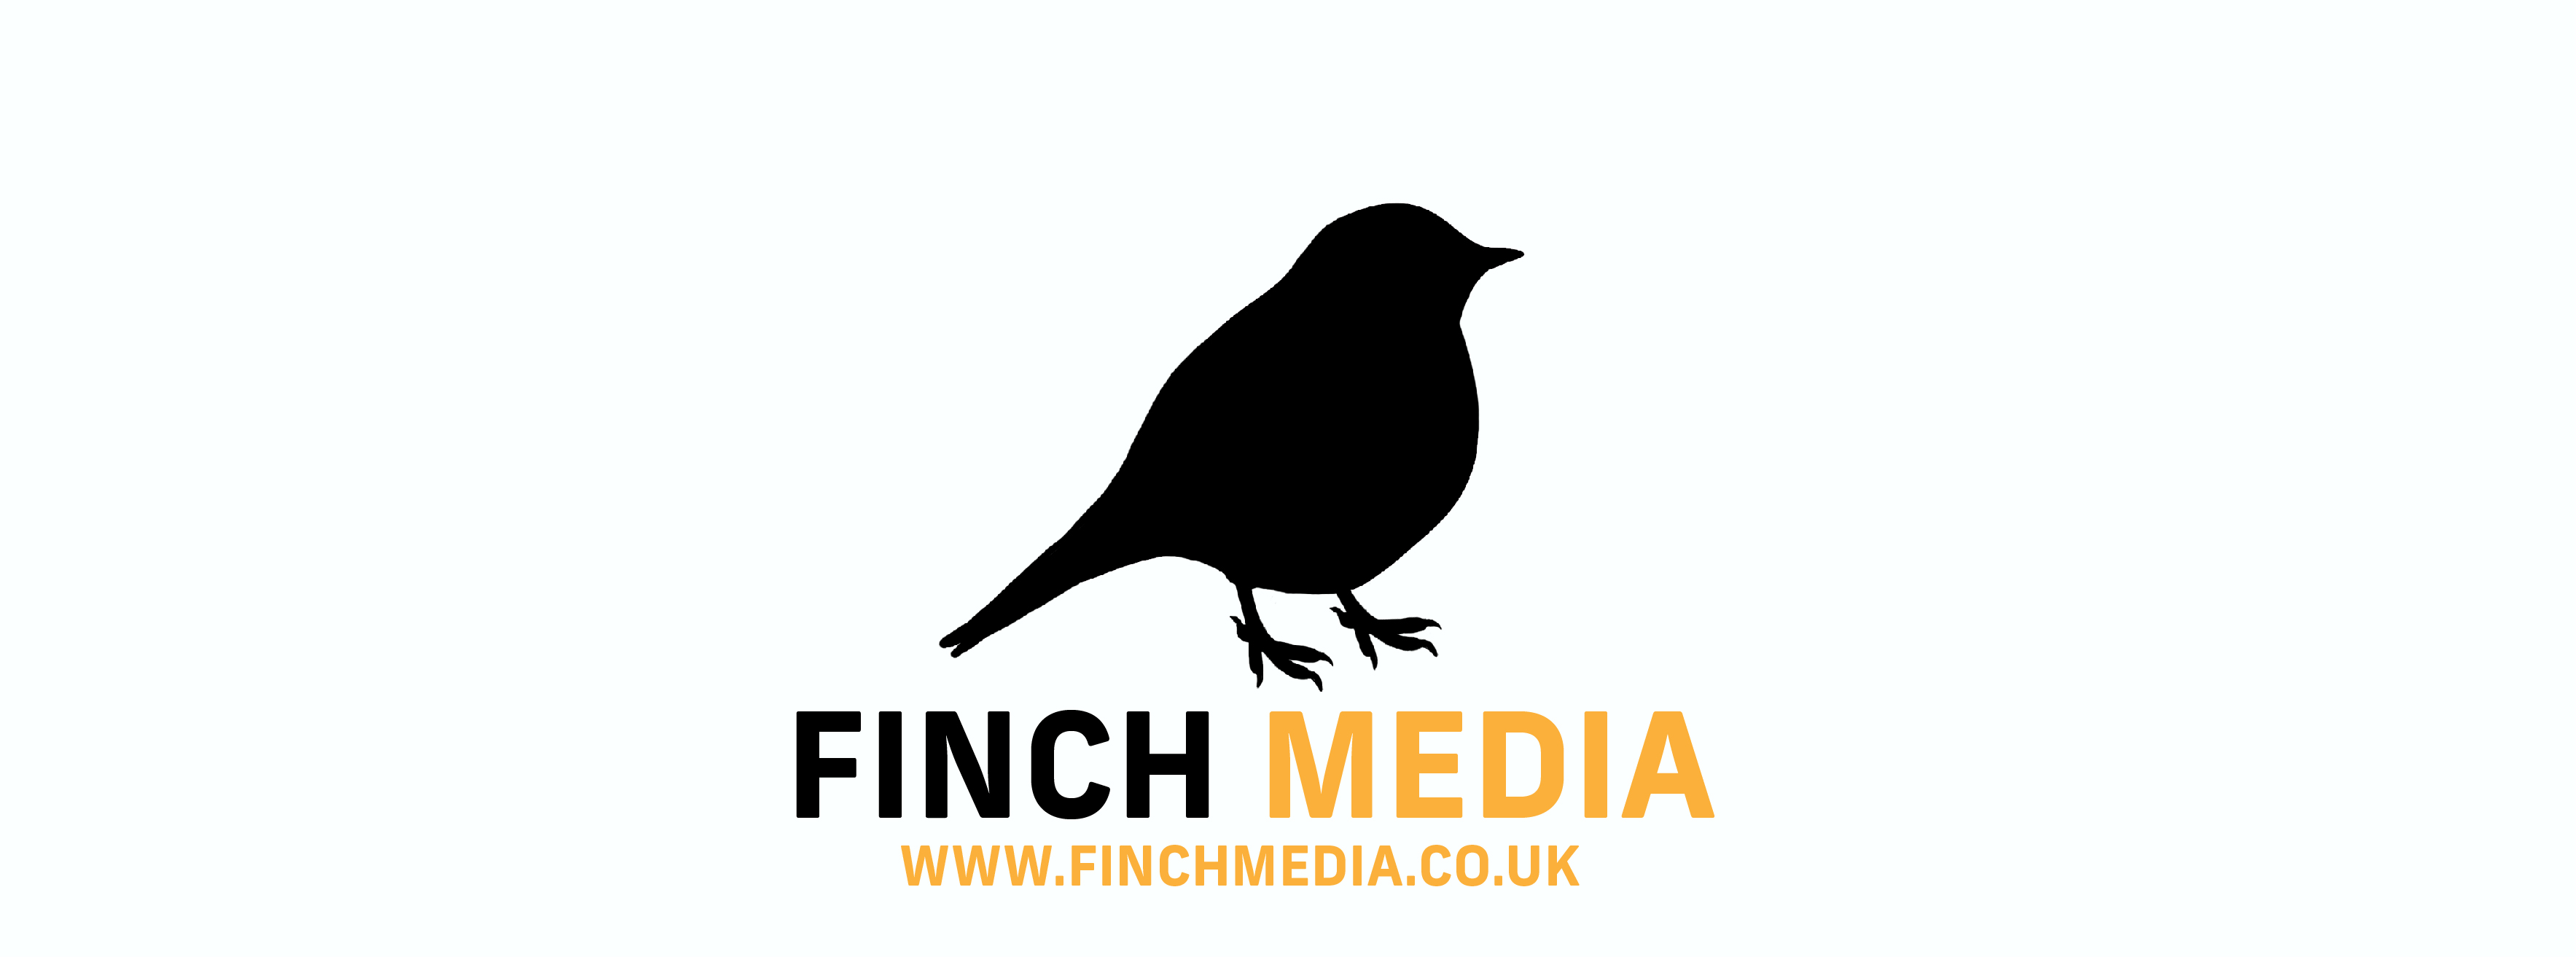 wedding supplier directory Finch Media